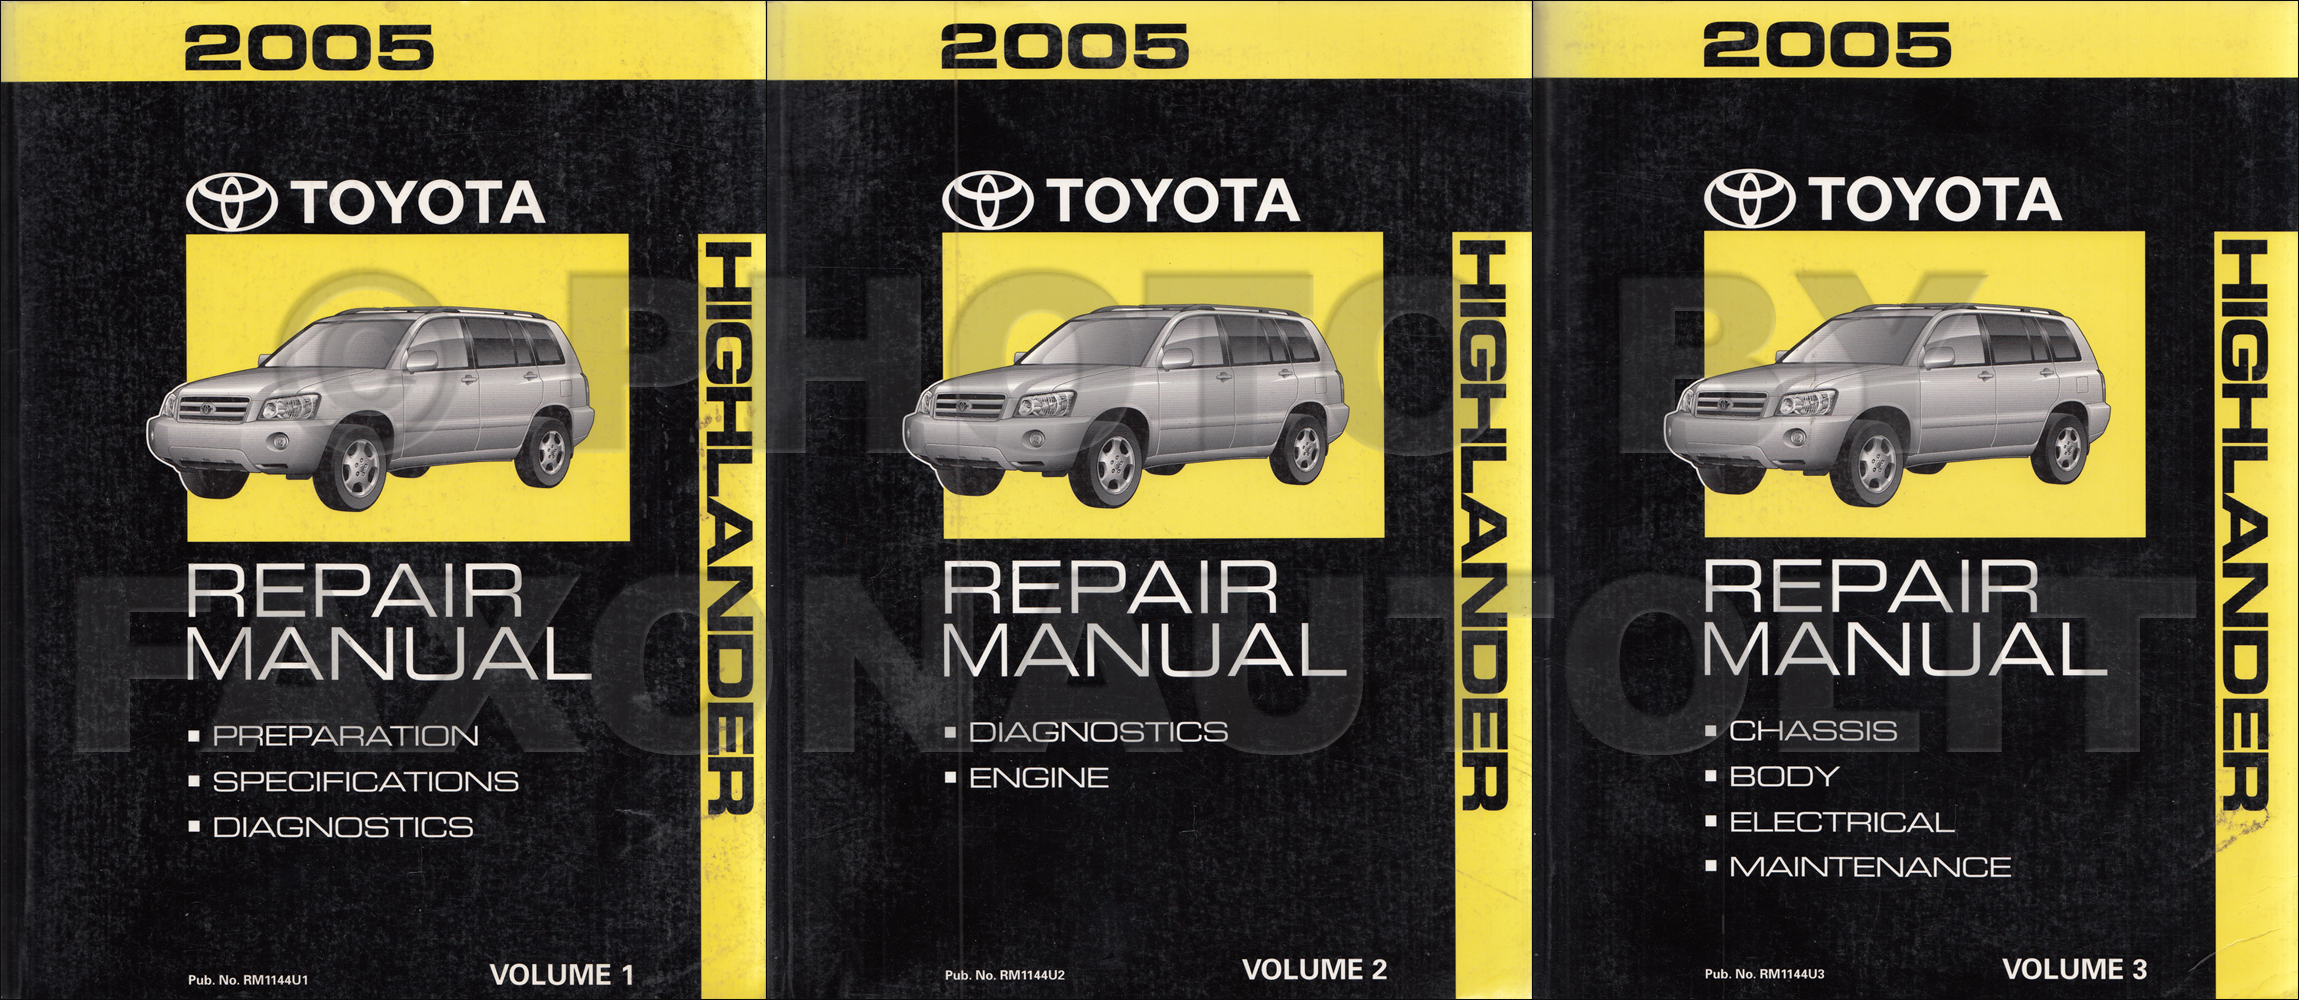 2005 Toyota Highlander Wiring Diagram Manual Original 2003 Toyota Highlander  Fuse Diagram Toyota Highlander Electrical Wiring